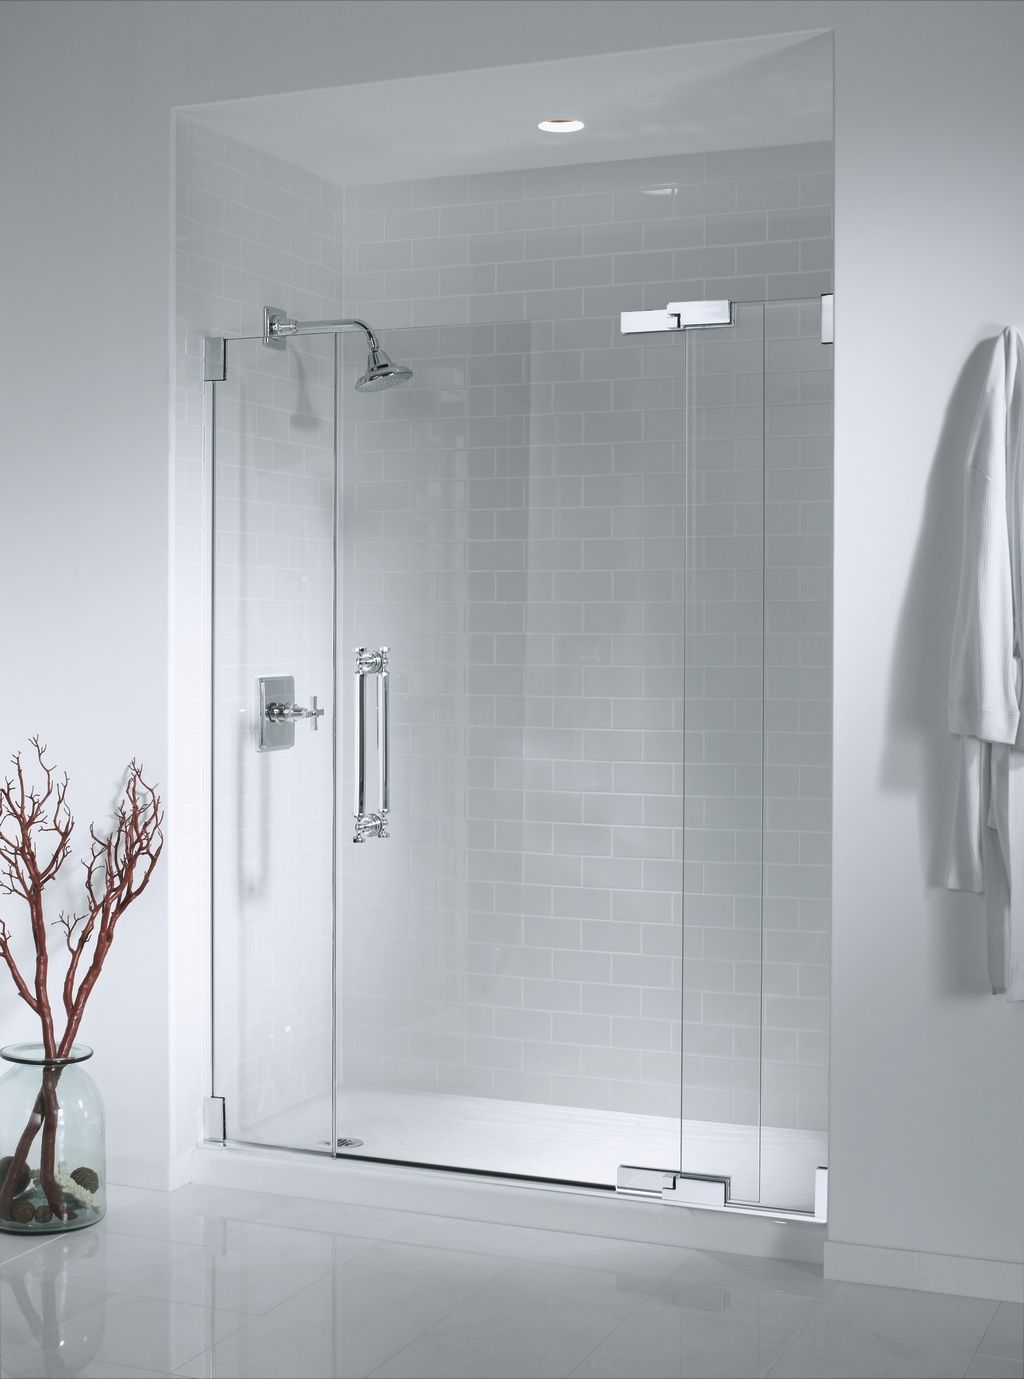 6 Shower Doors Trends That Can Enhance The Visual Appearance